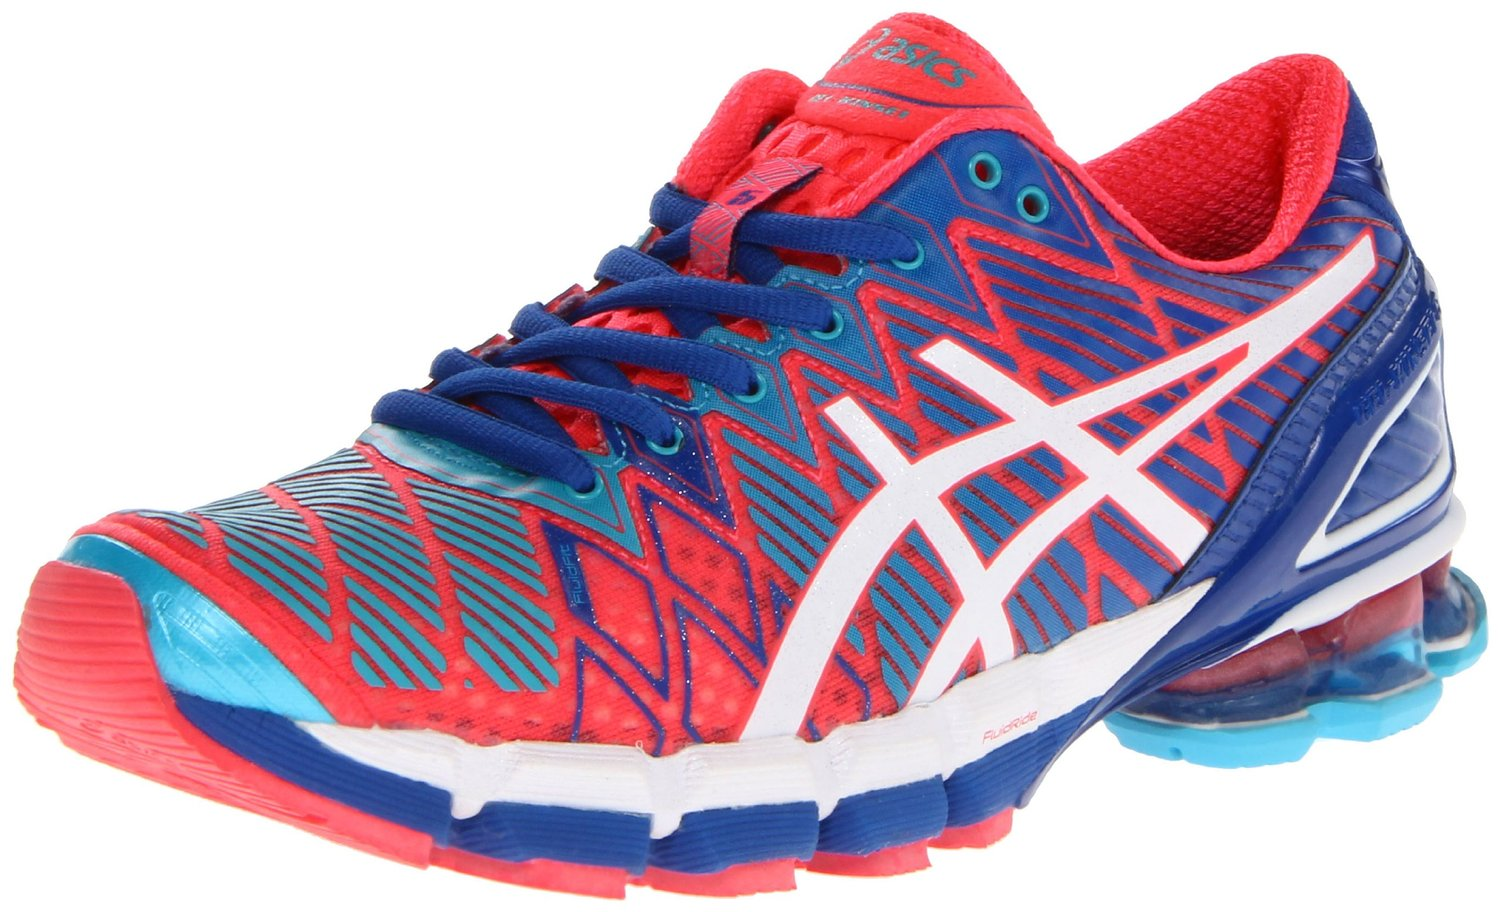 Asics Gel Kinsei 5 Running Shoe